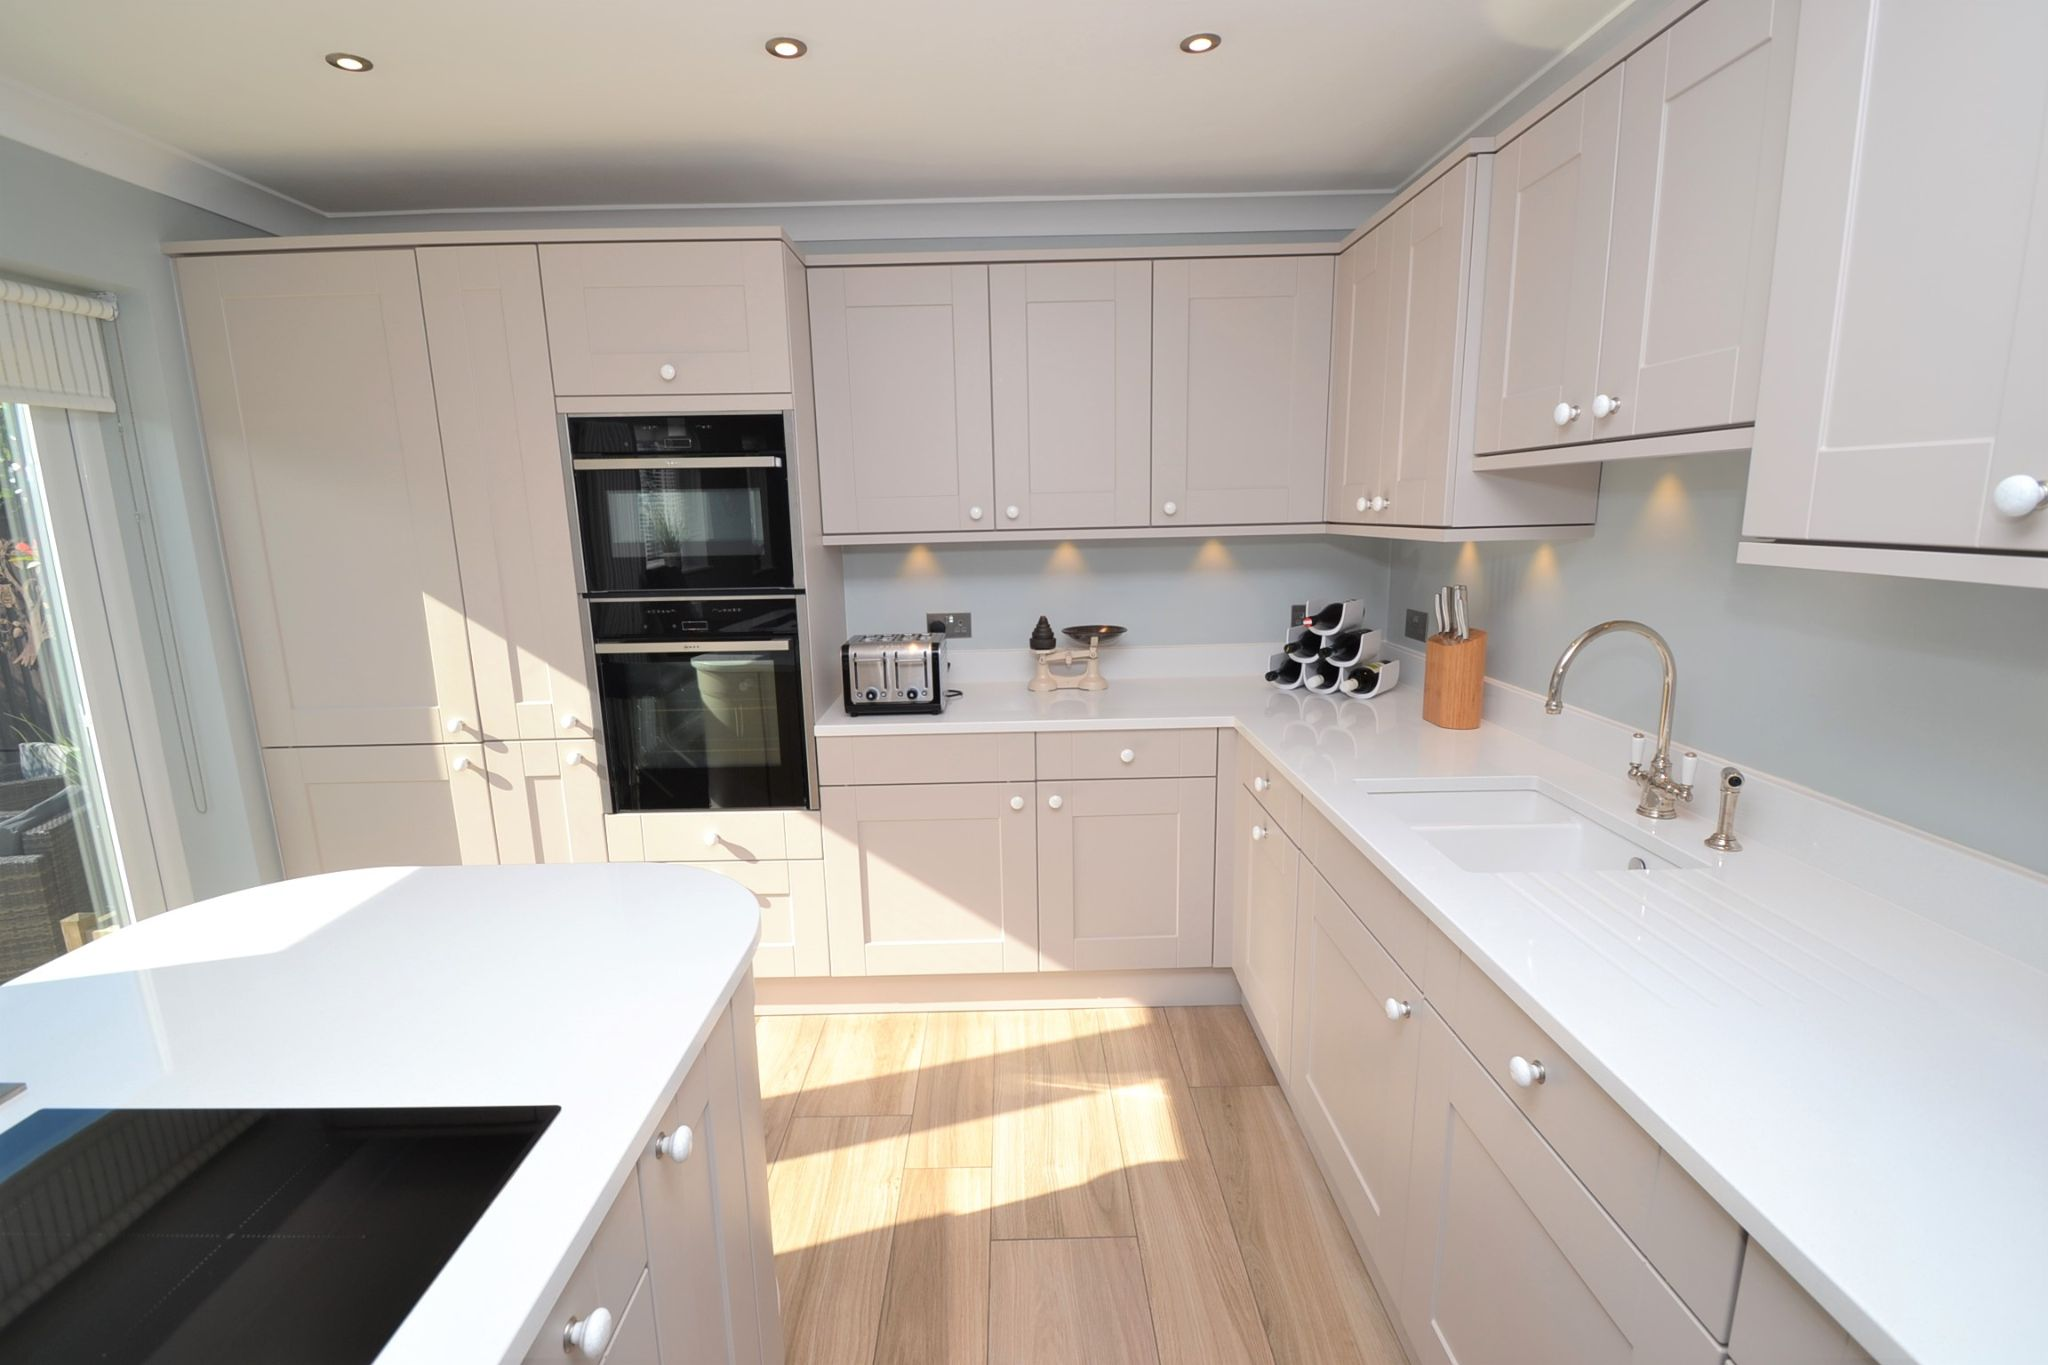 5 Bedroom Detached House For Sale - Photograph 13